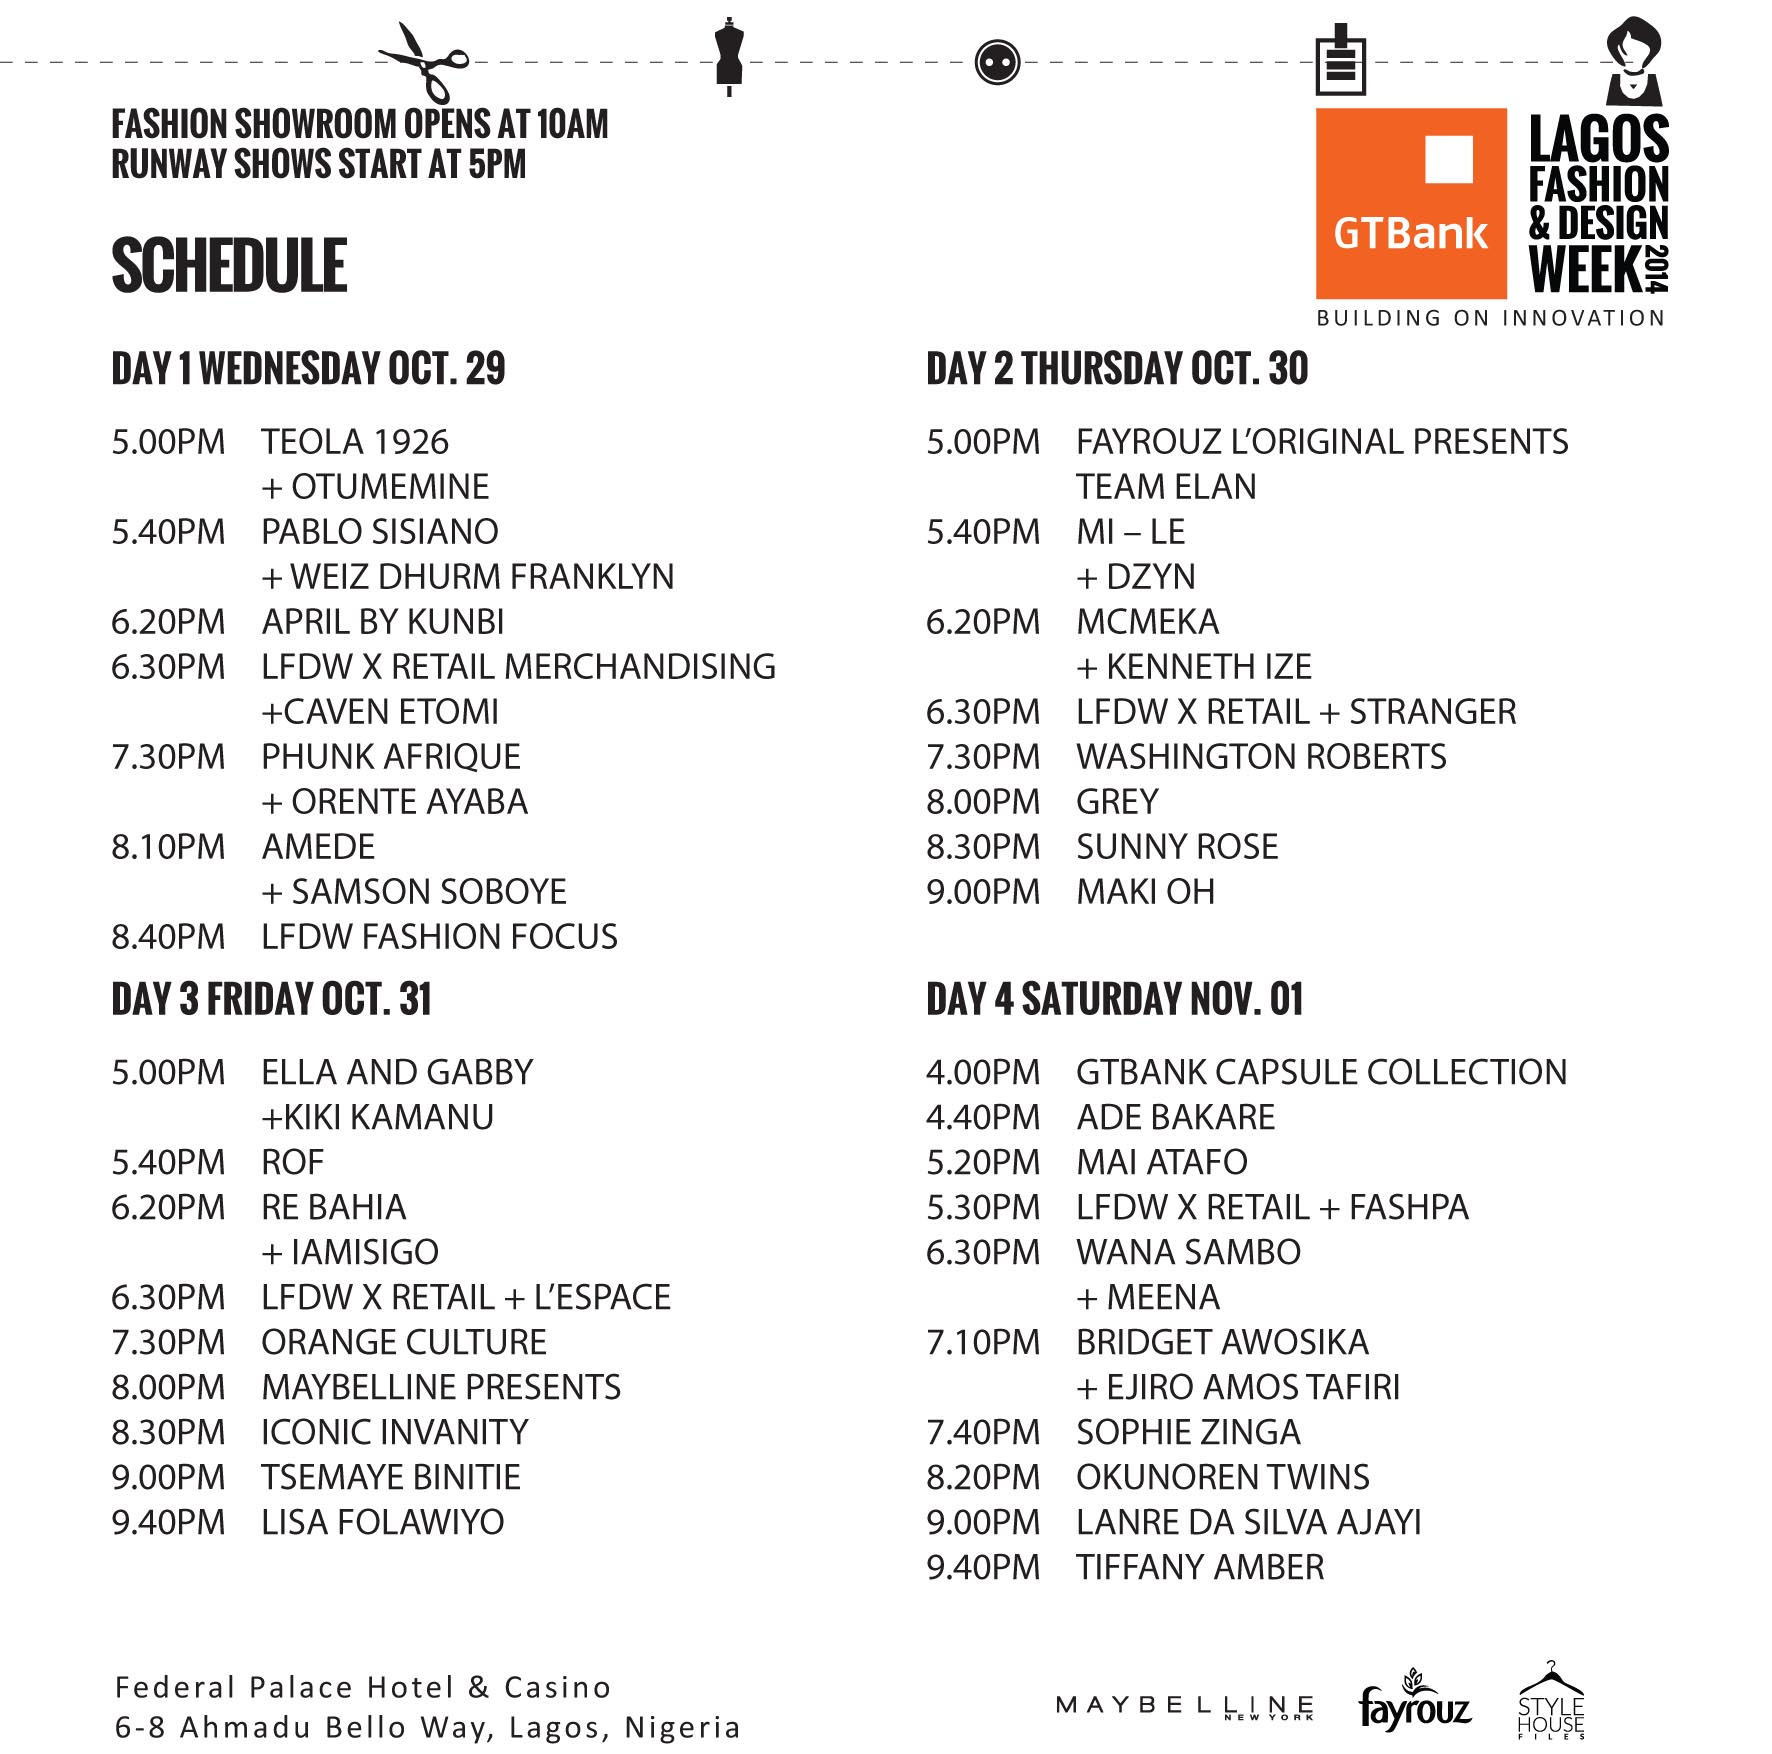 Events Schedule for the Lagos Fashion & Design Week 2014